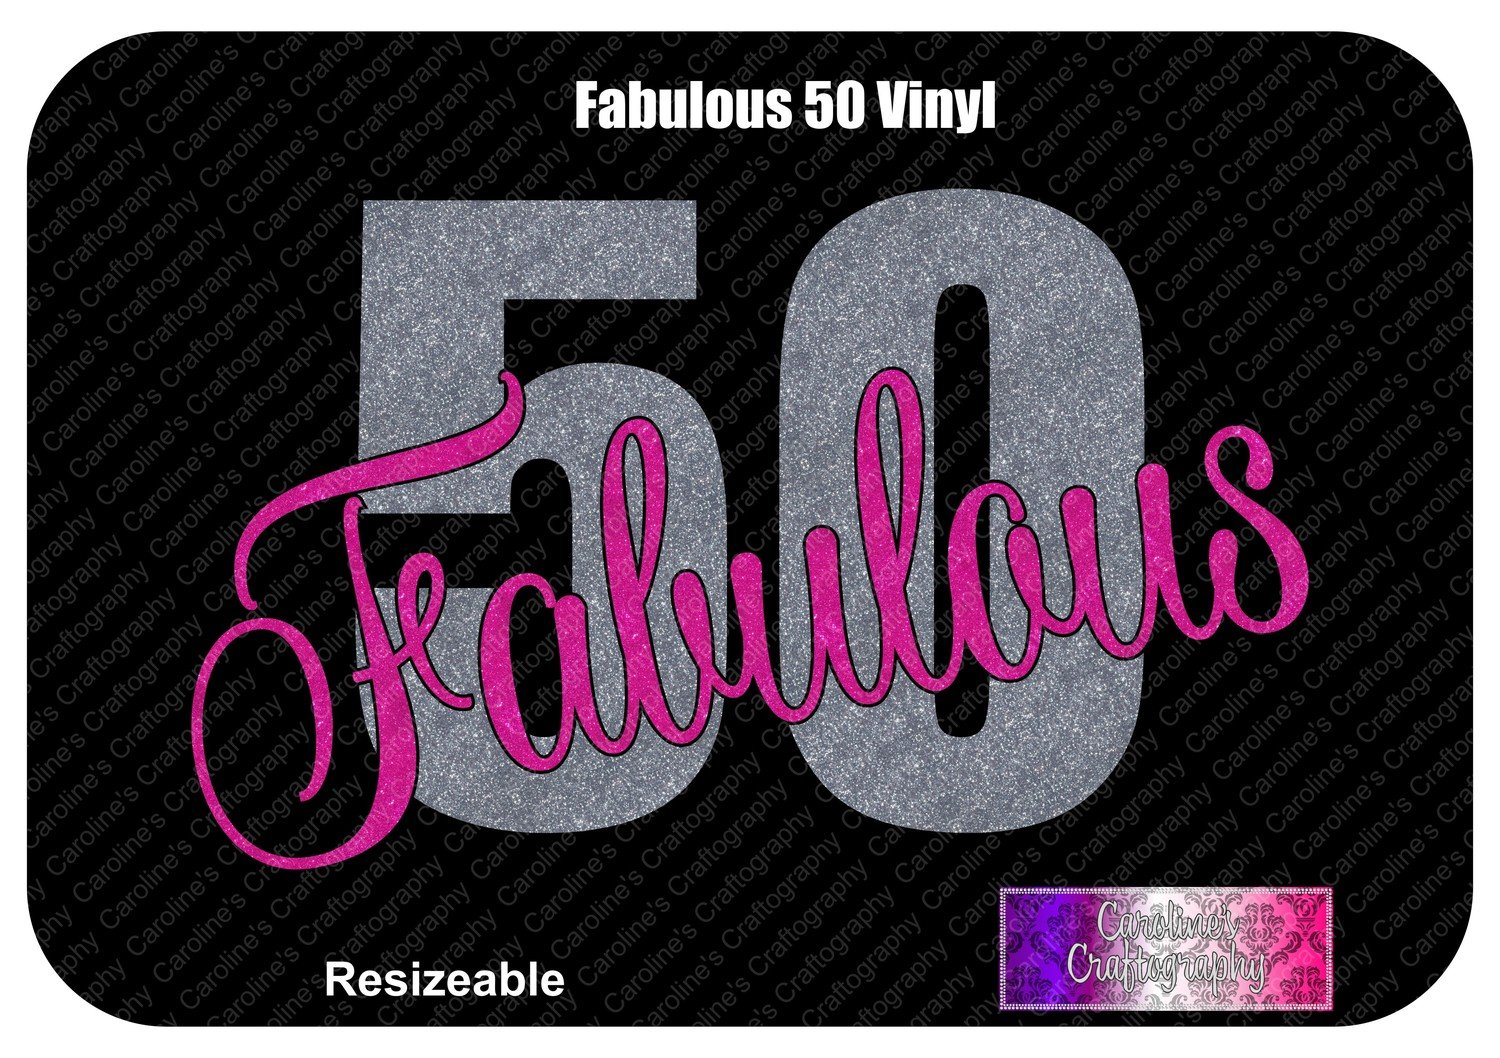 Fabulous Fifty (50) Vinyl